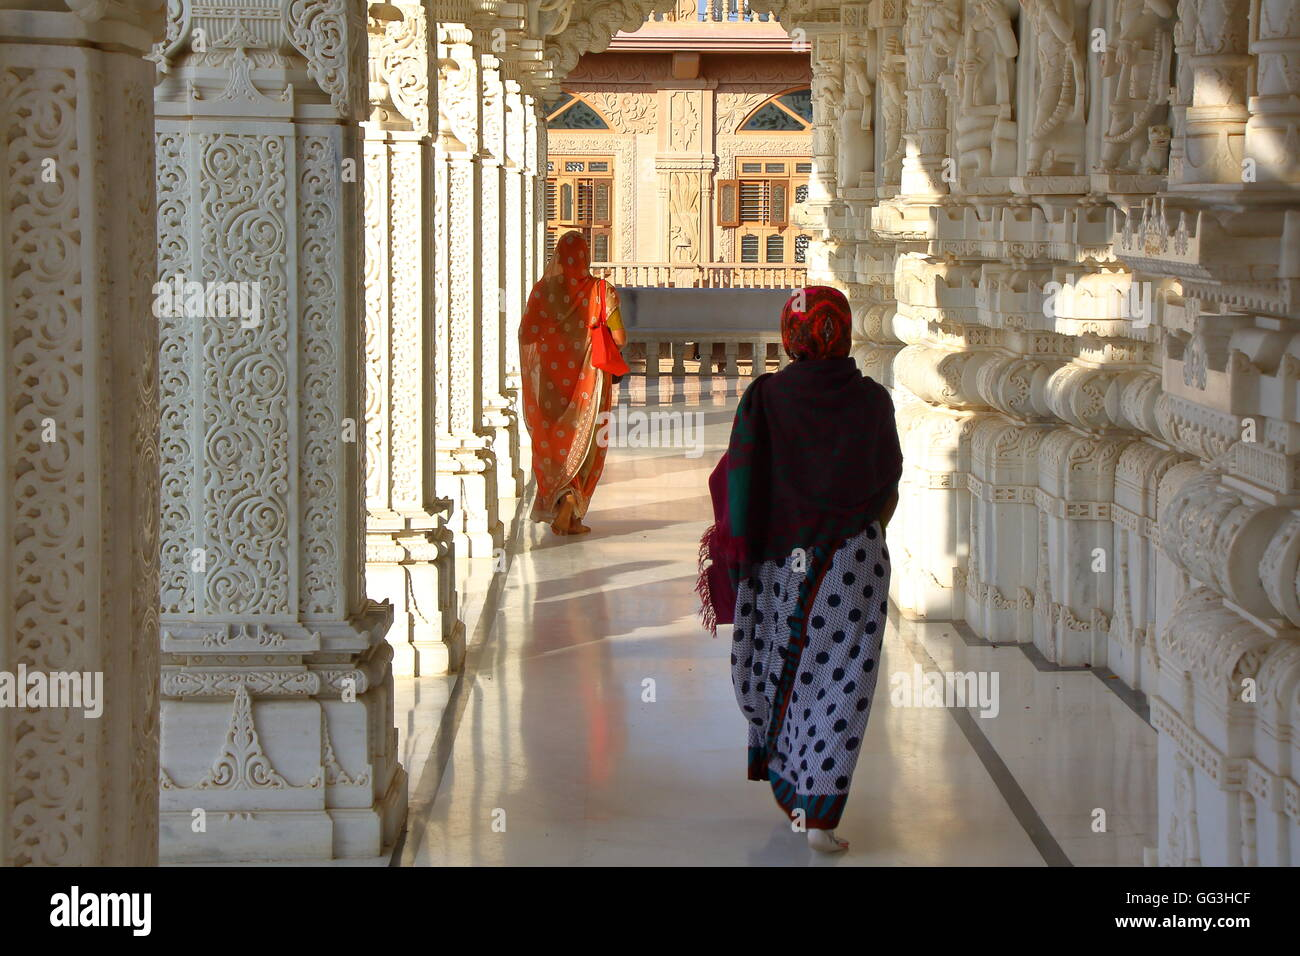 Inside a jain temple in Ahmedabad, Gujarat, India Stock Photo